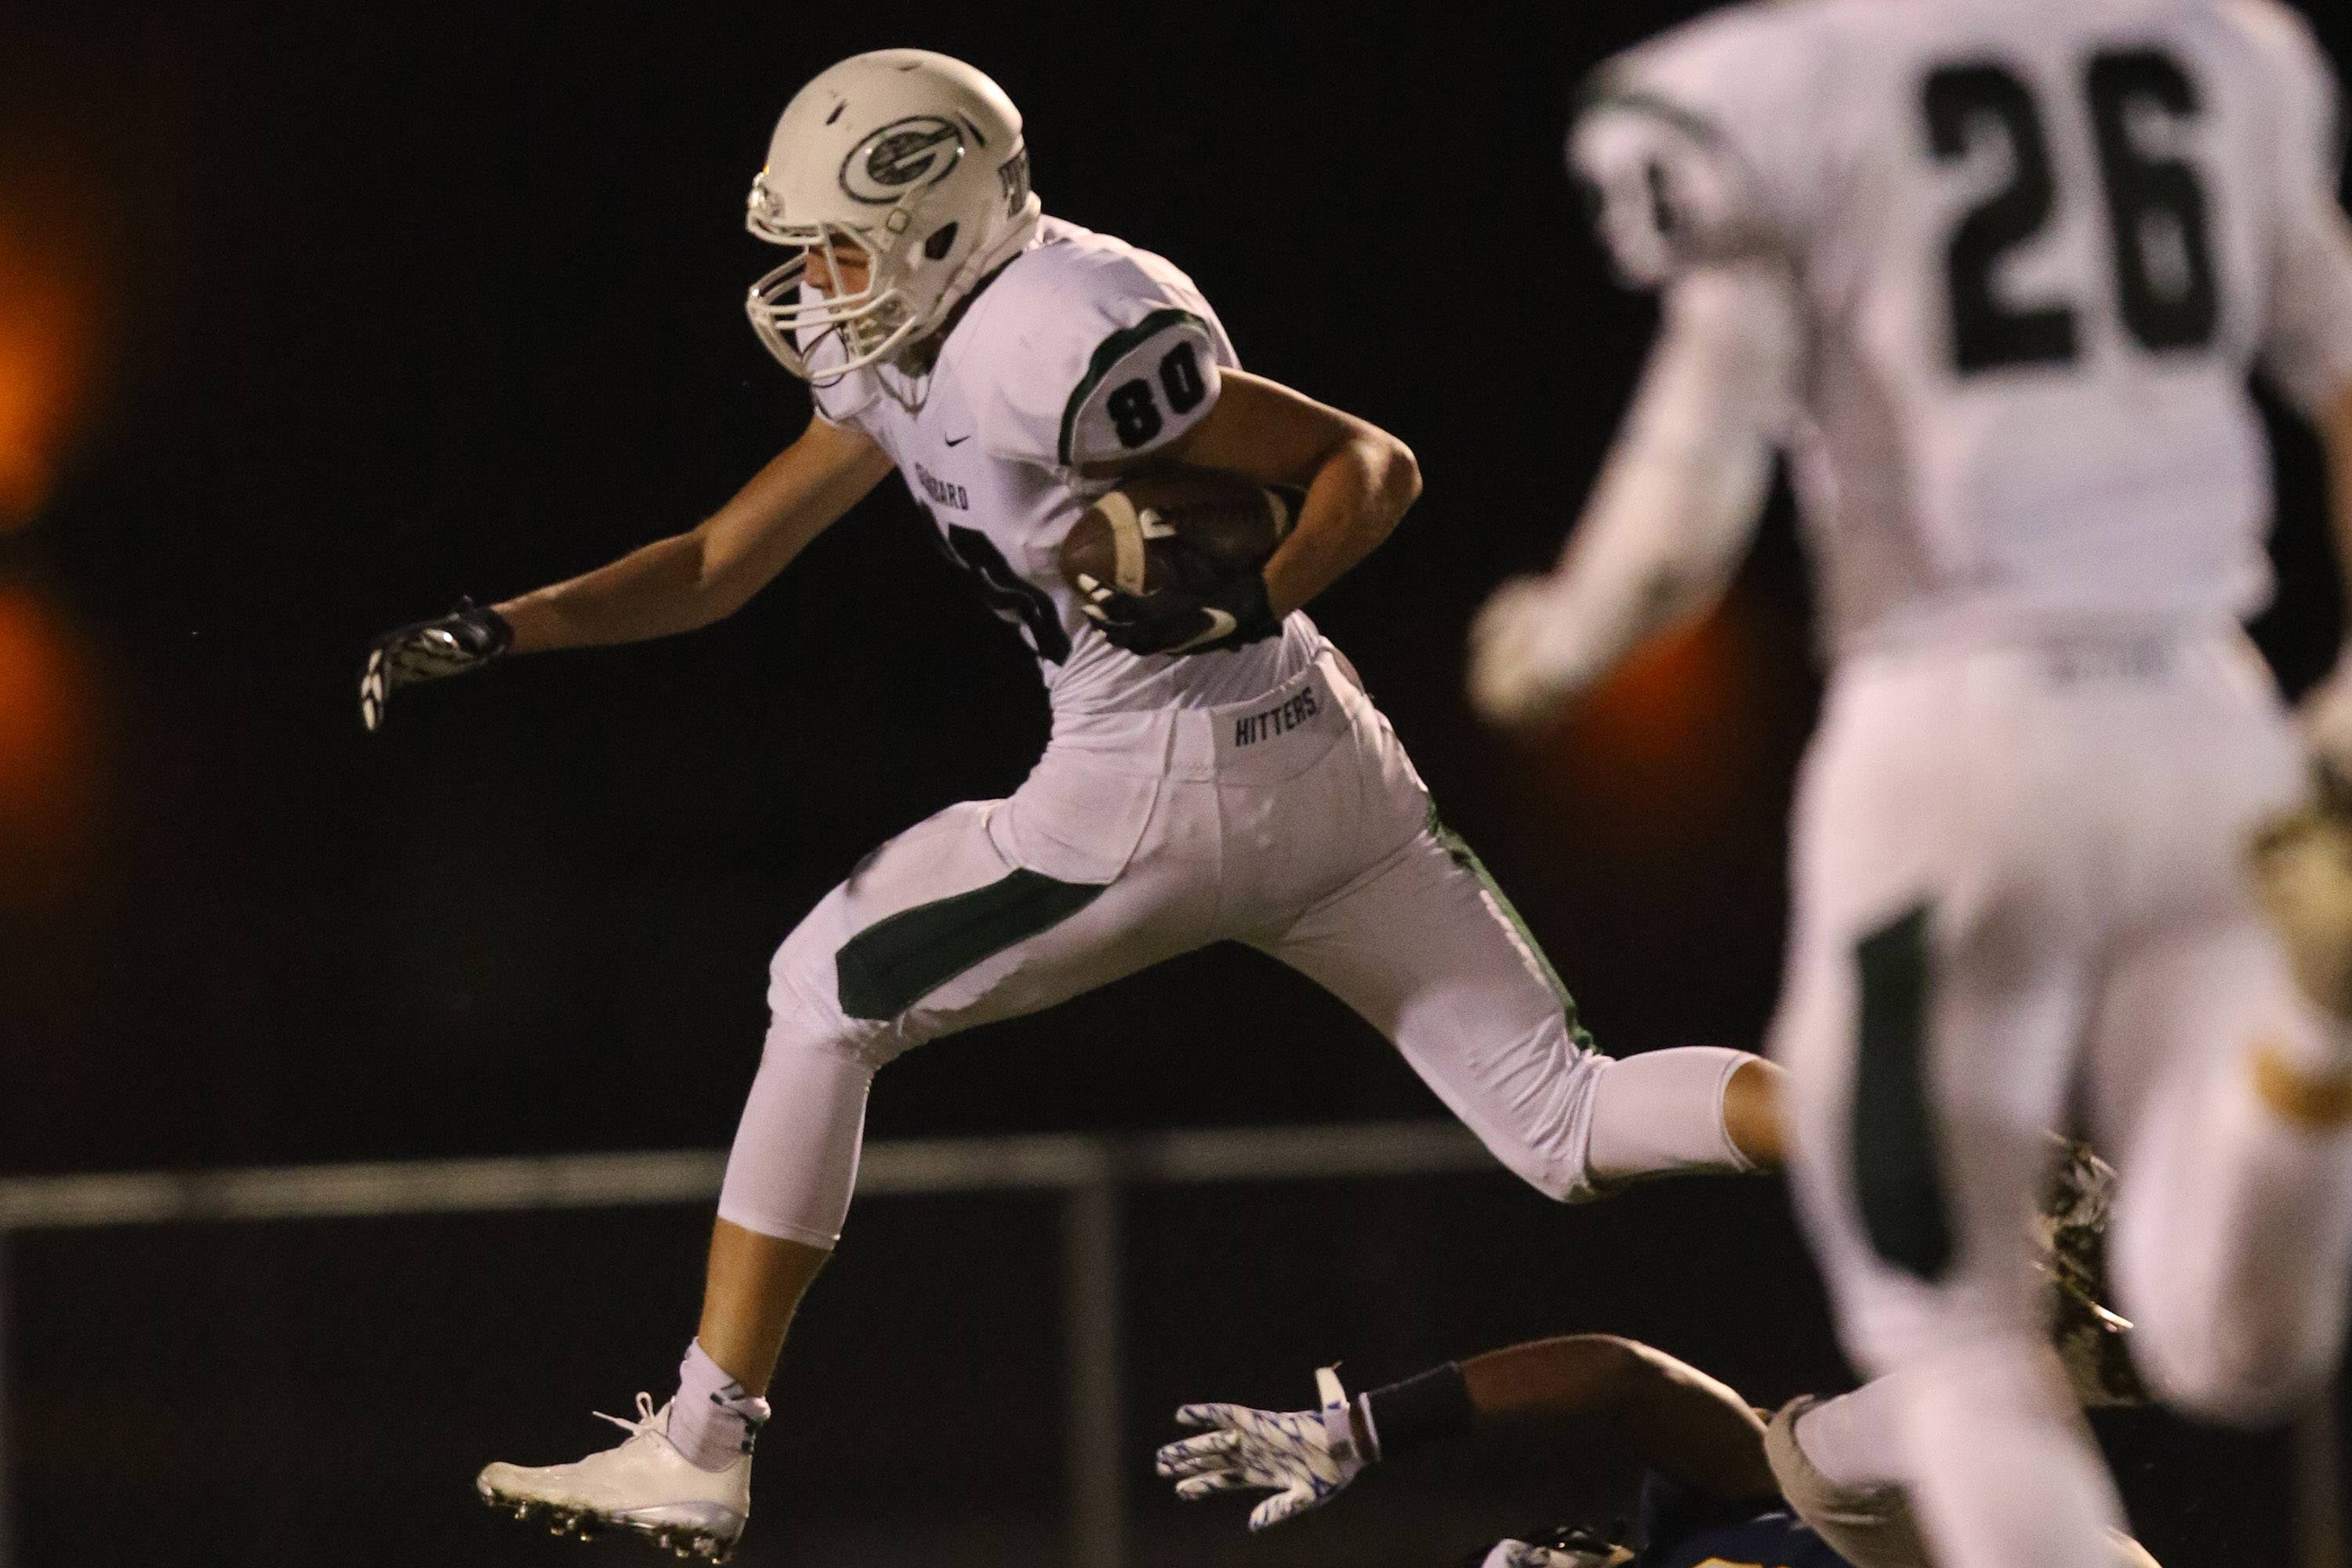 Glenbard West wide receiver Alec Pierce (80) will be back in a high-powered Hilltoppers offense.